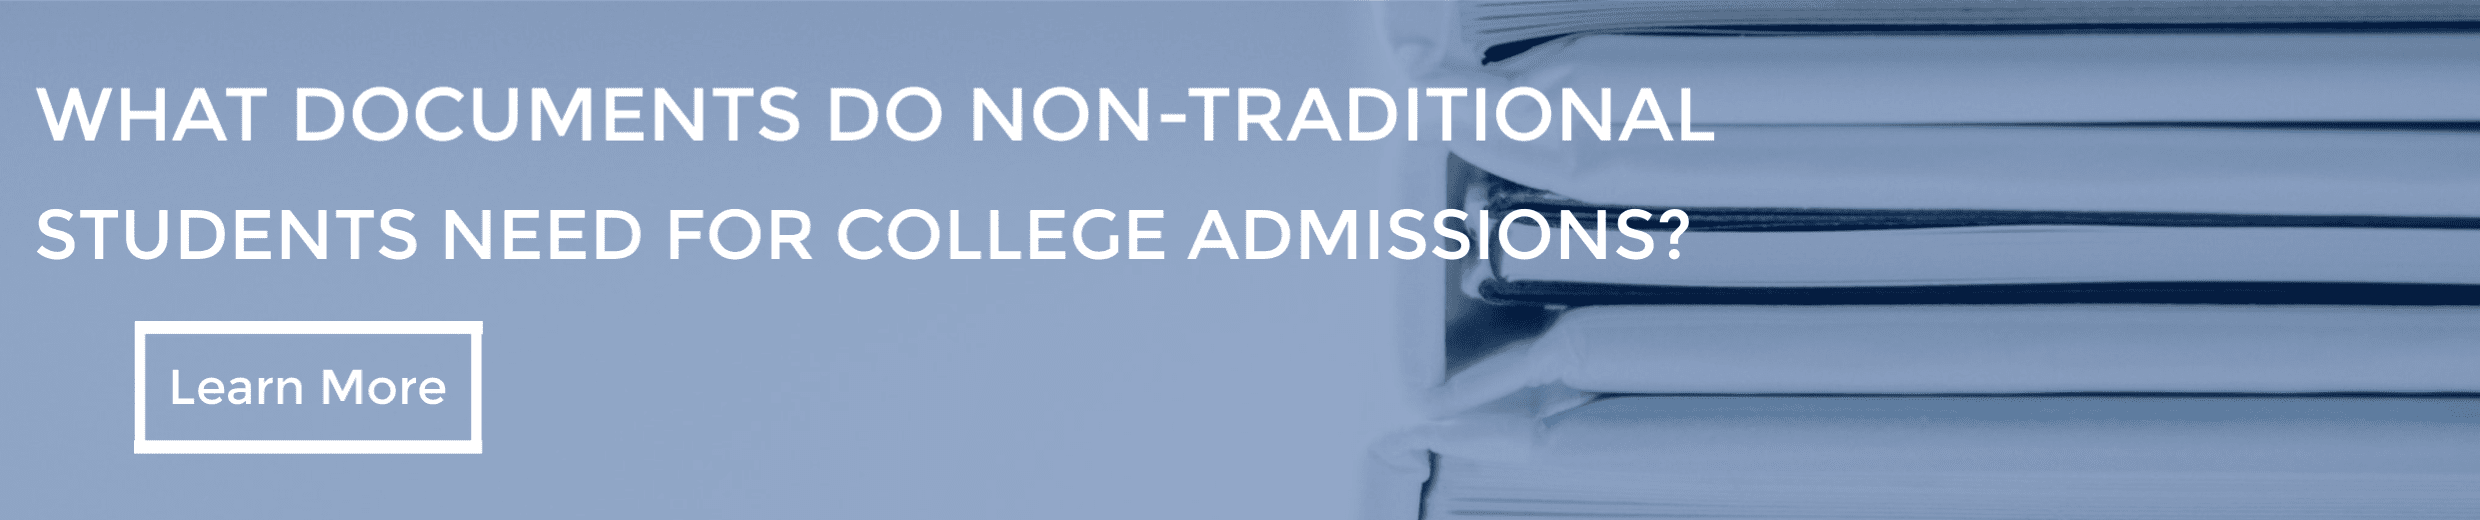 What Documents do Non-Traditional Students Need for College Admissions